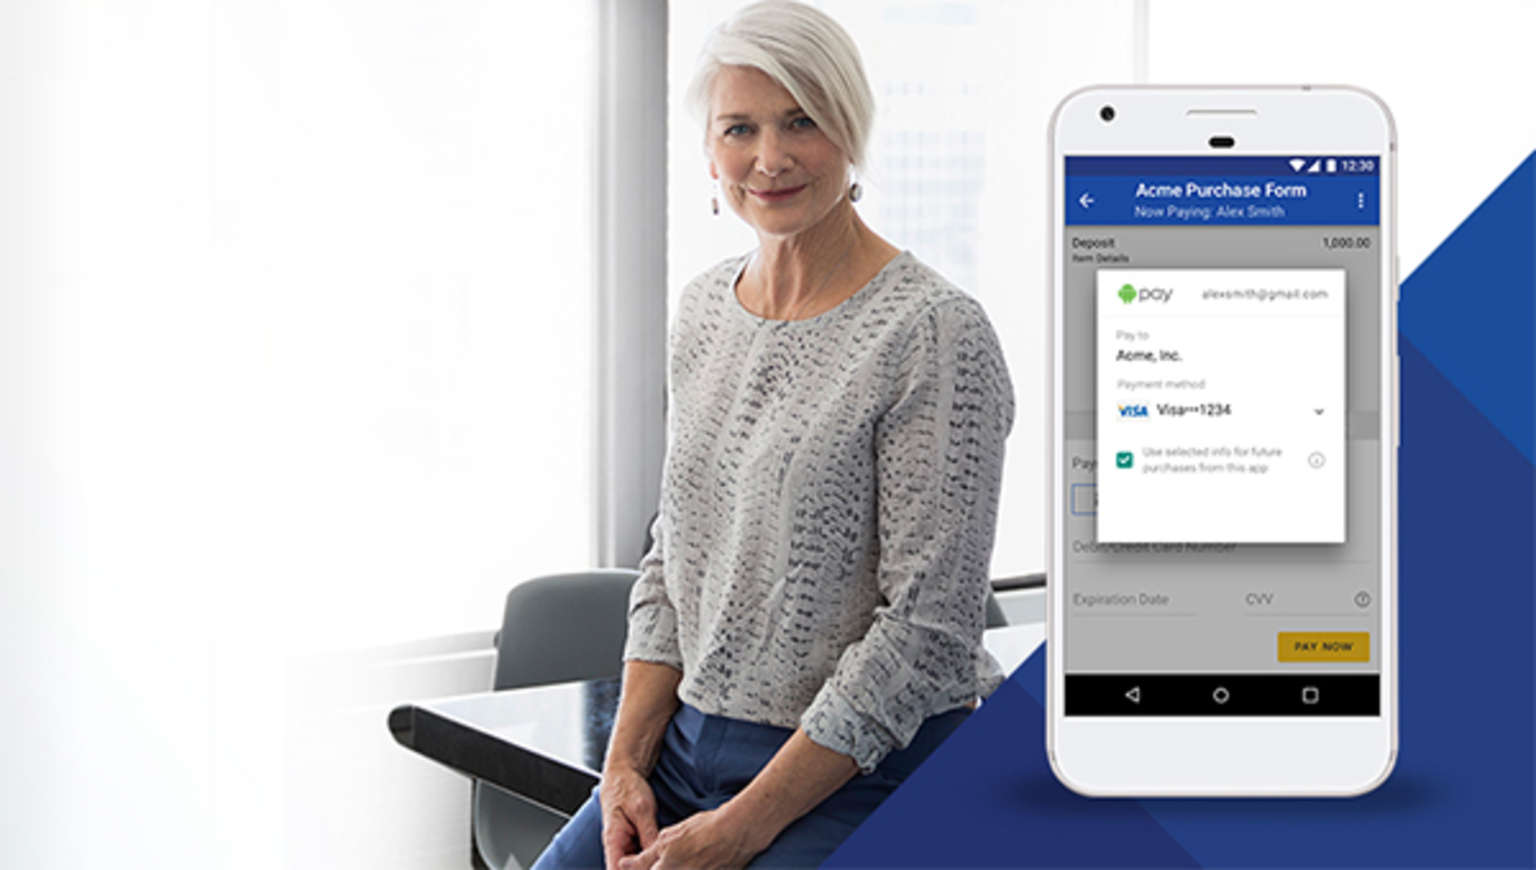 Find out about DocuSign Payments